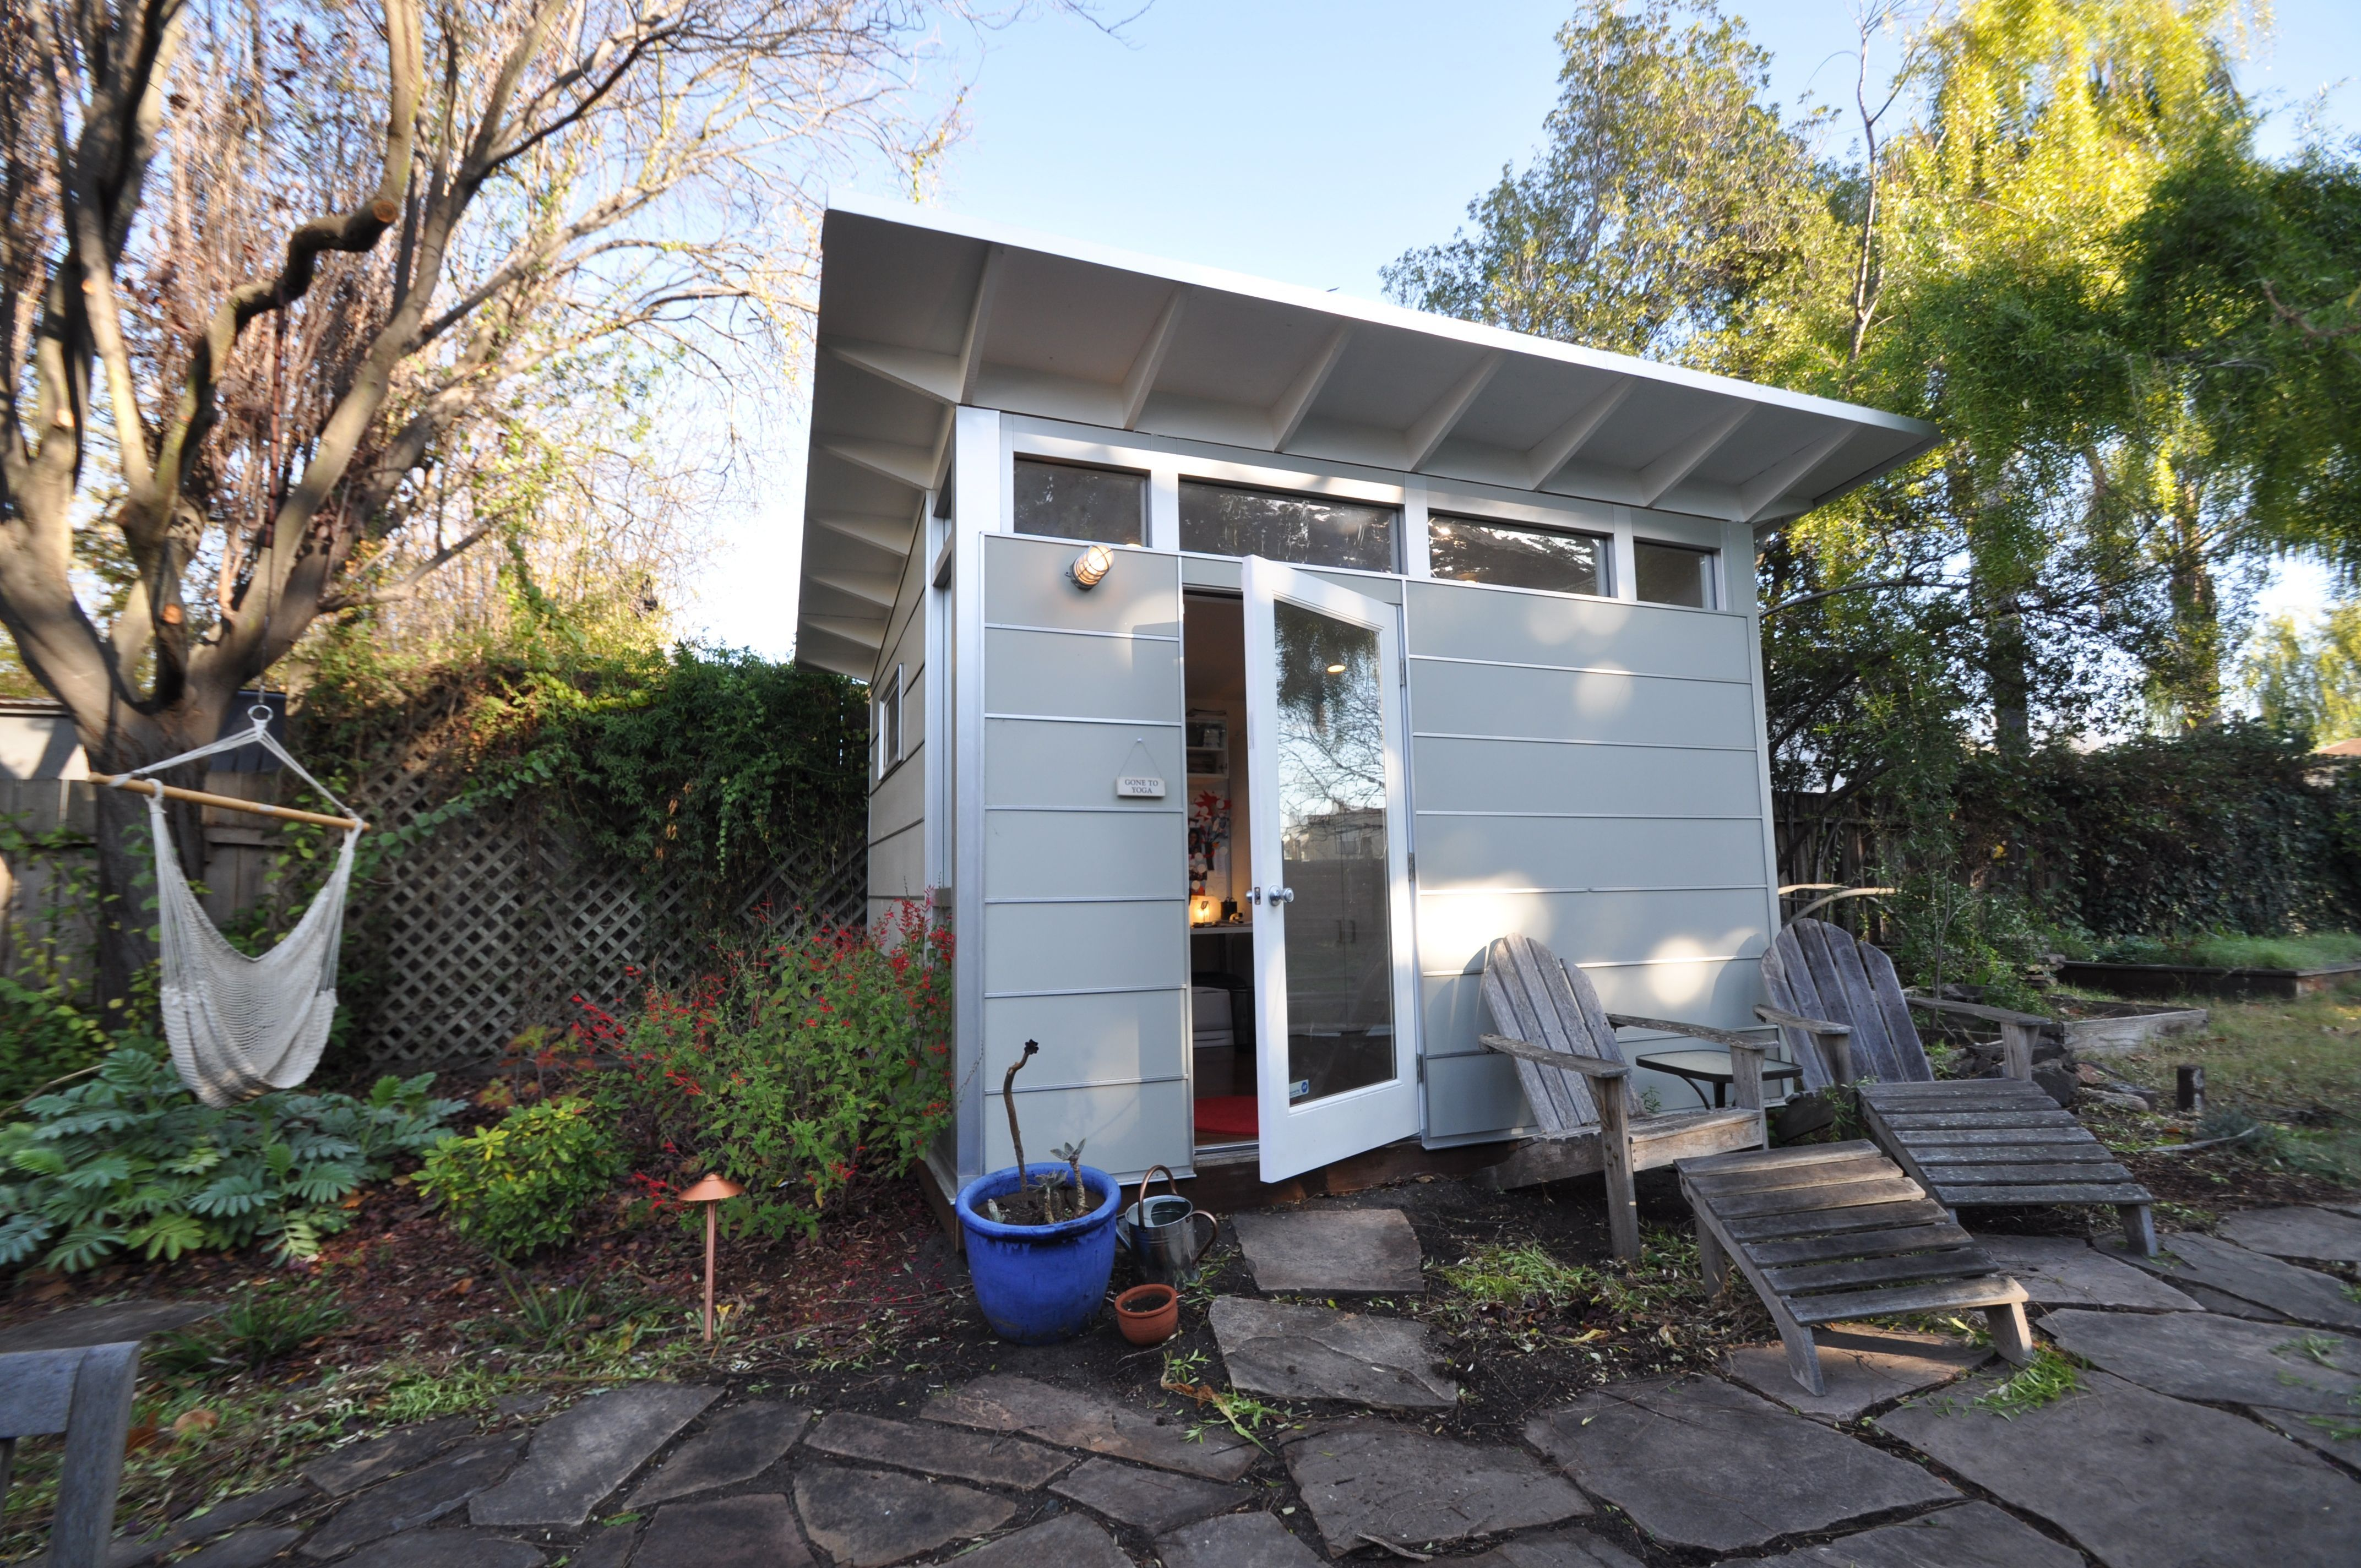 wwwstudioshedcom Modern shed and home office from Studio Shed